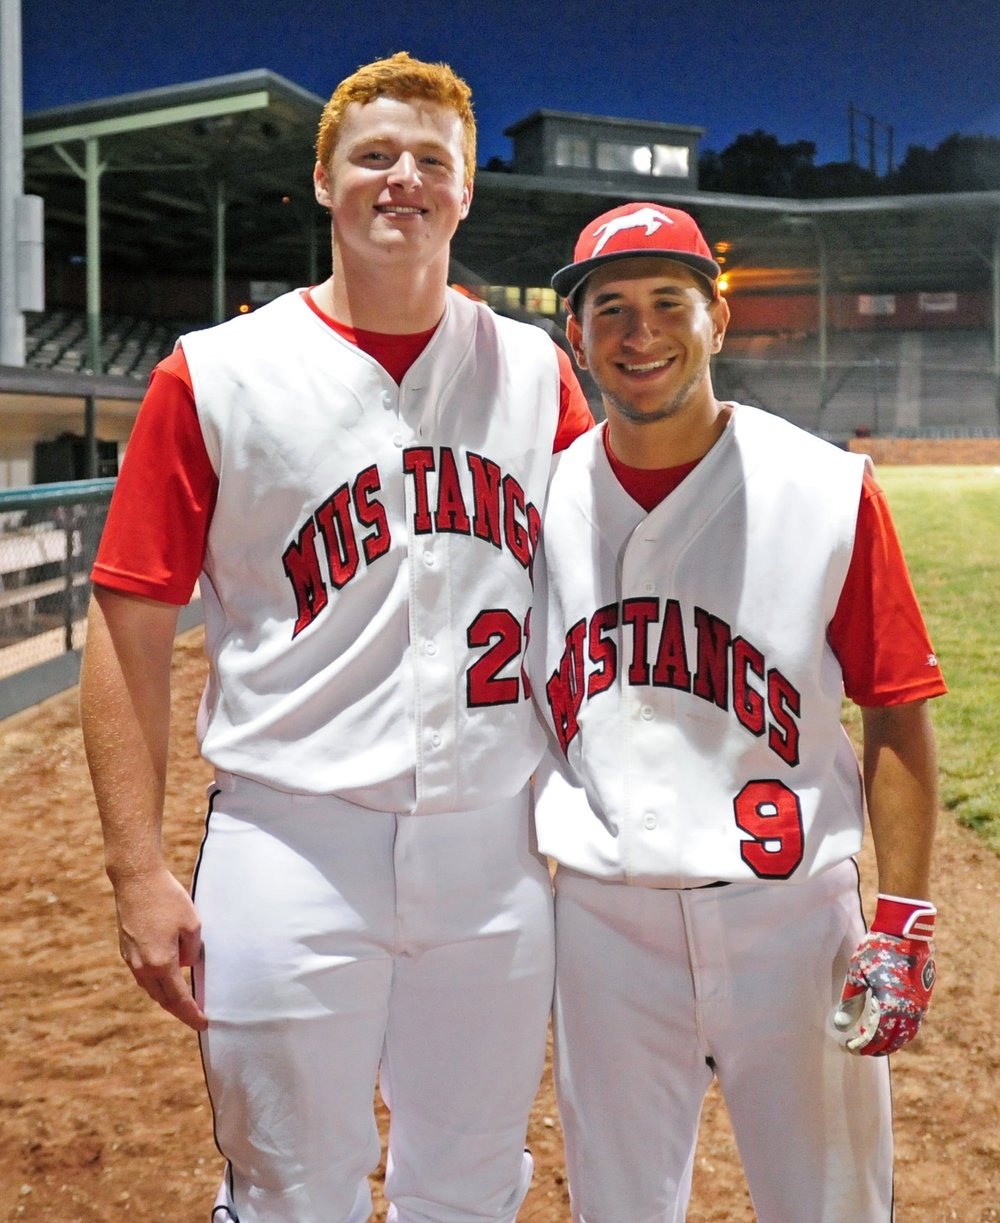 NICK INGRAM/Citizen photo Jake Purl, left, and Easton Fortuna have been playing baseball together for six straight years dating back to their days at Park Hill South High School. They will go their separate ways after a tour this summer with the St. Joseph (Mo.) Mustangs.